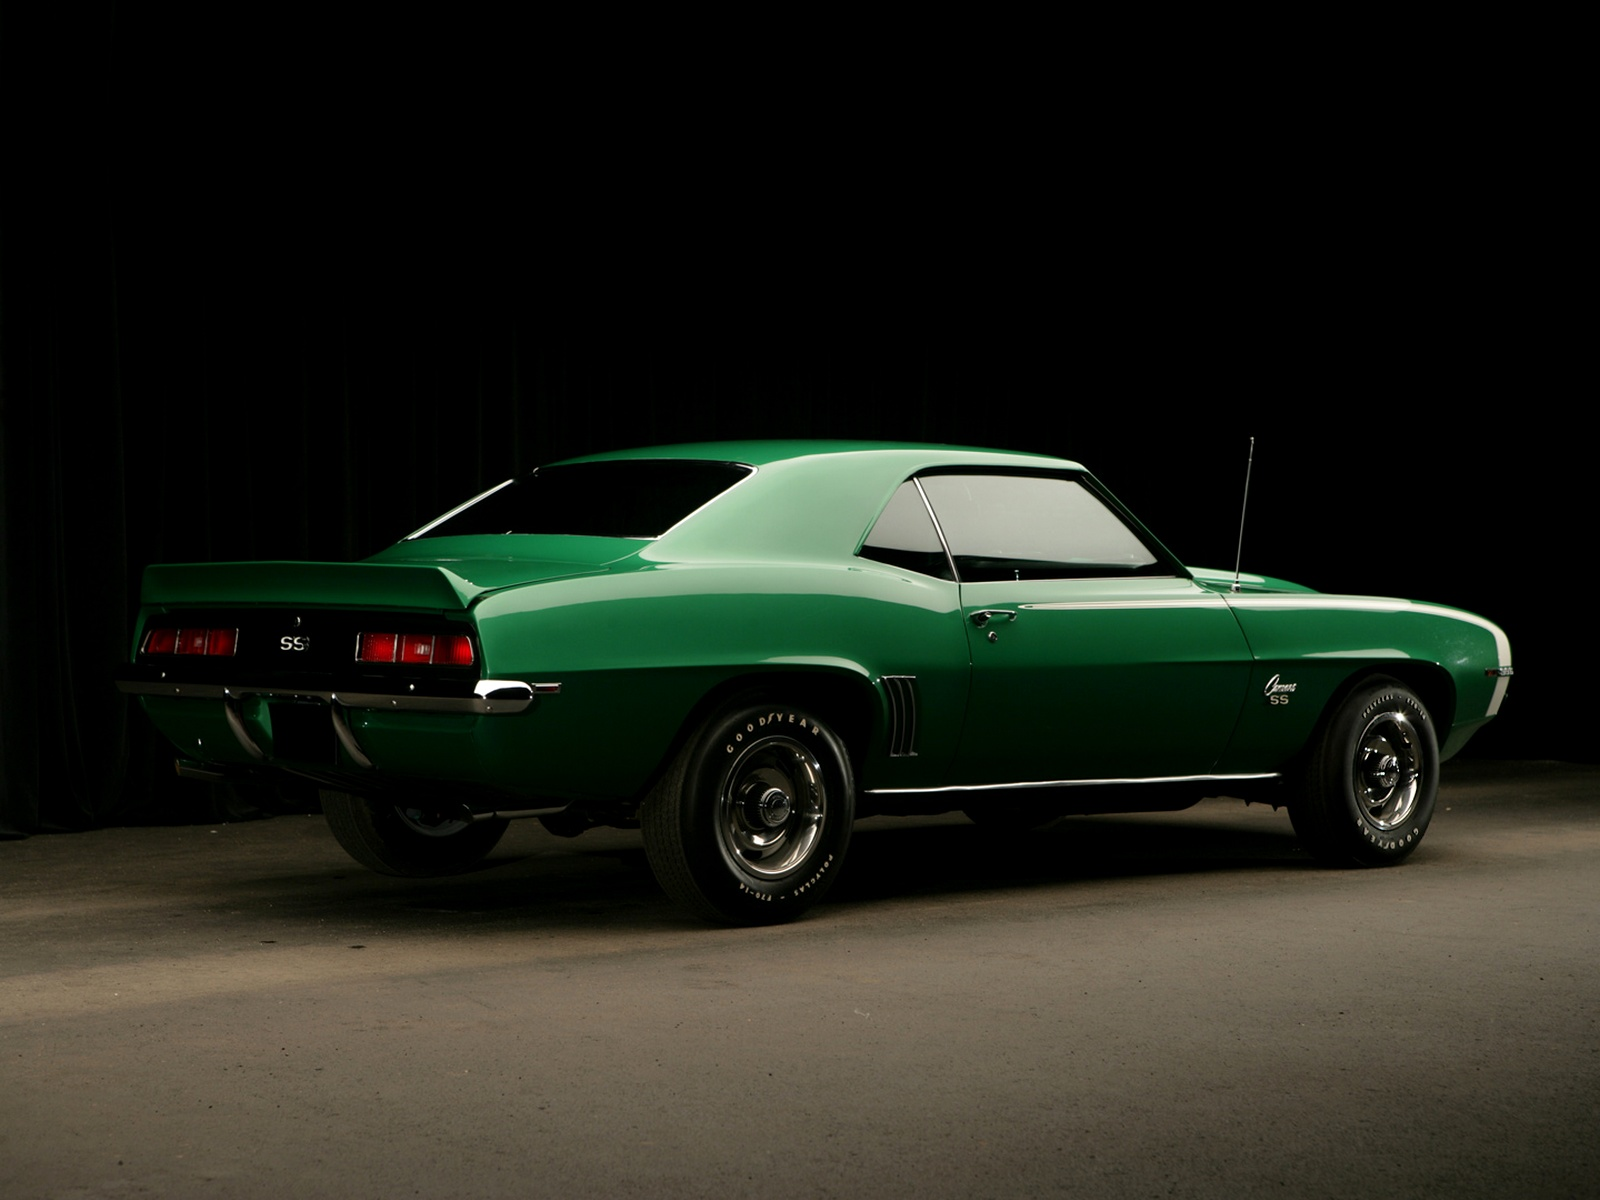 Chevrolet Wallpapers Chevrolet Camaro SS 396 1969 Wallpapers 1600x1200